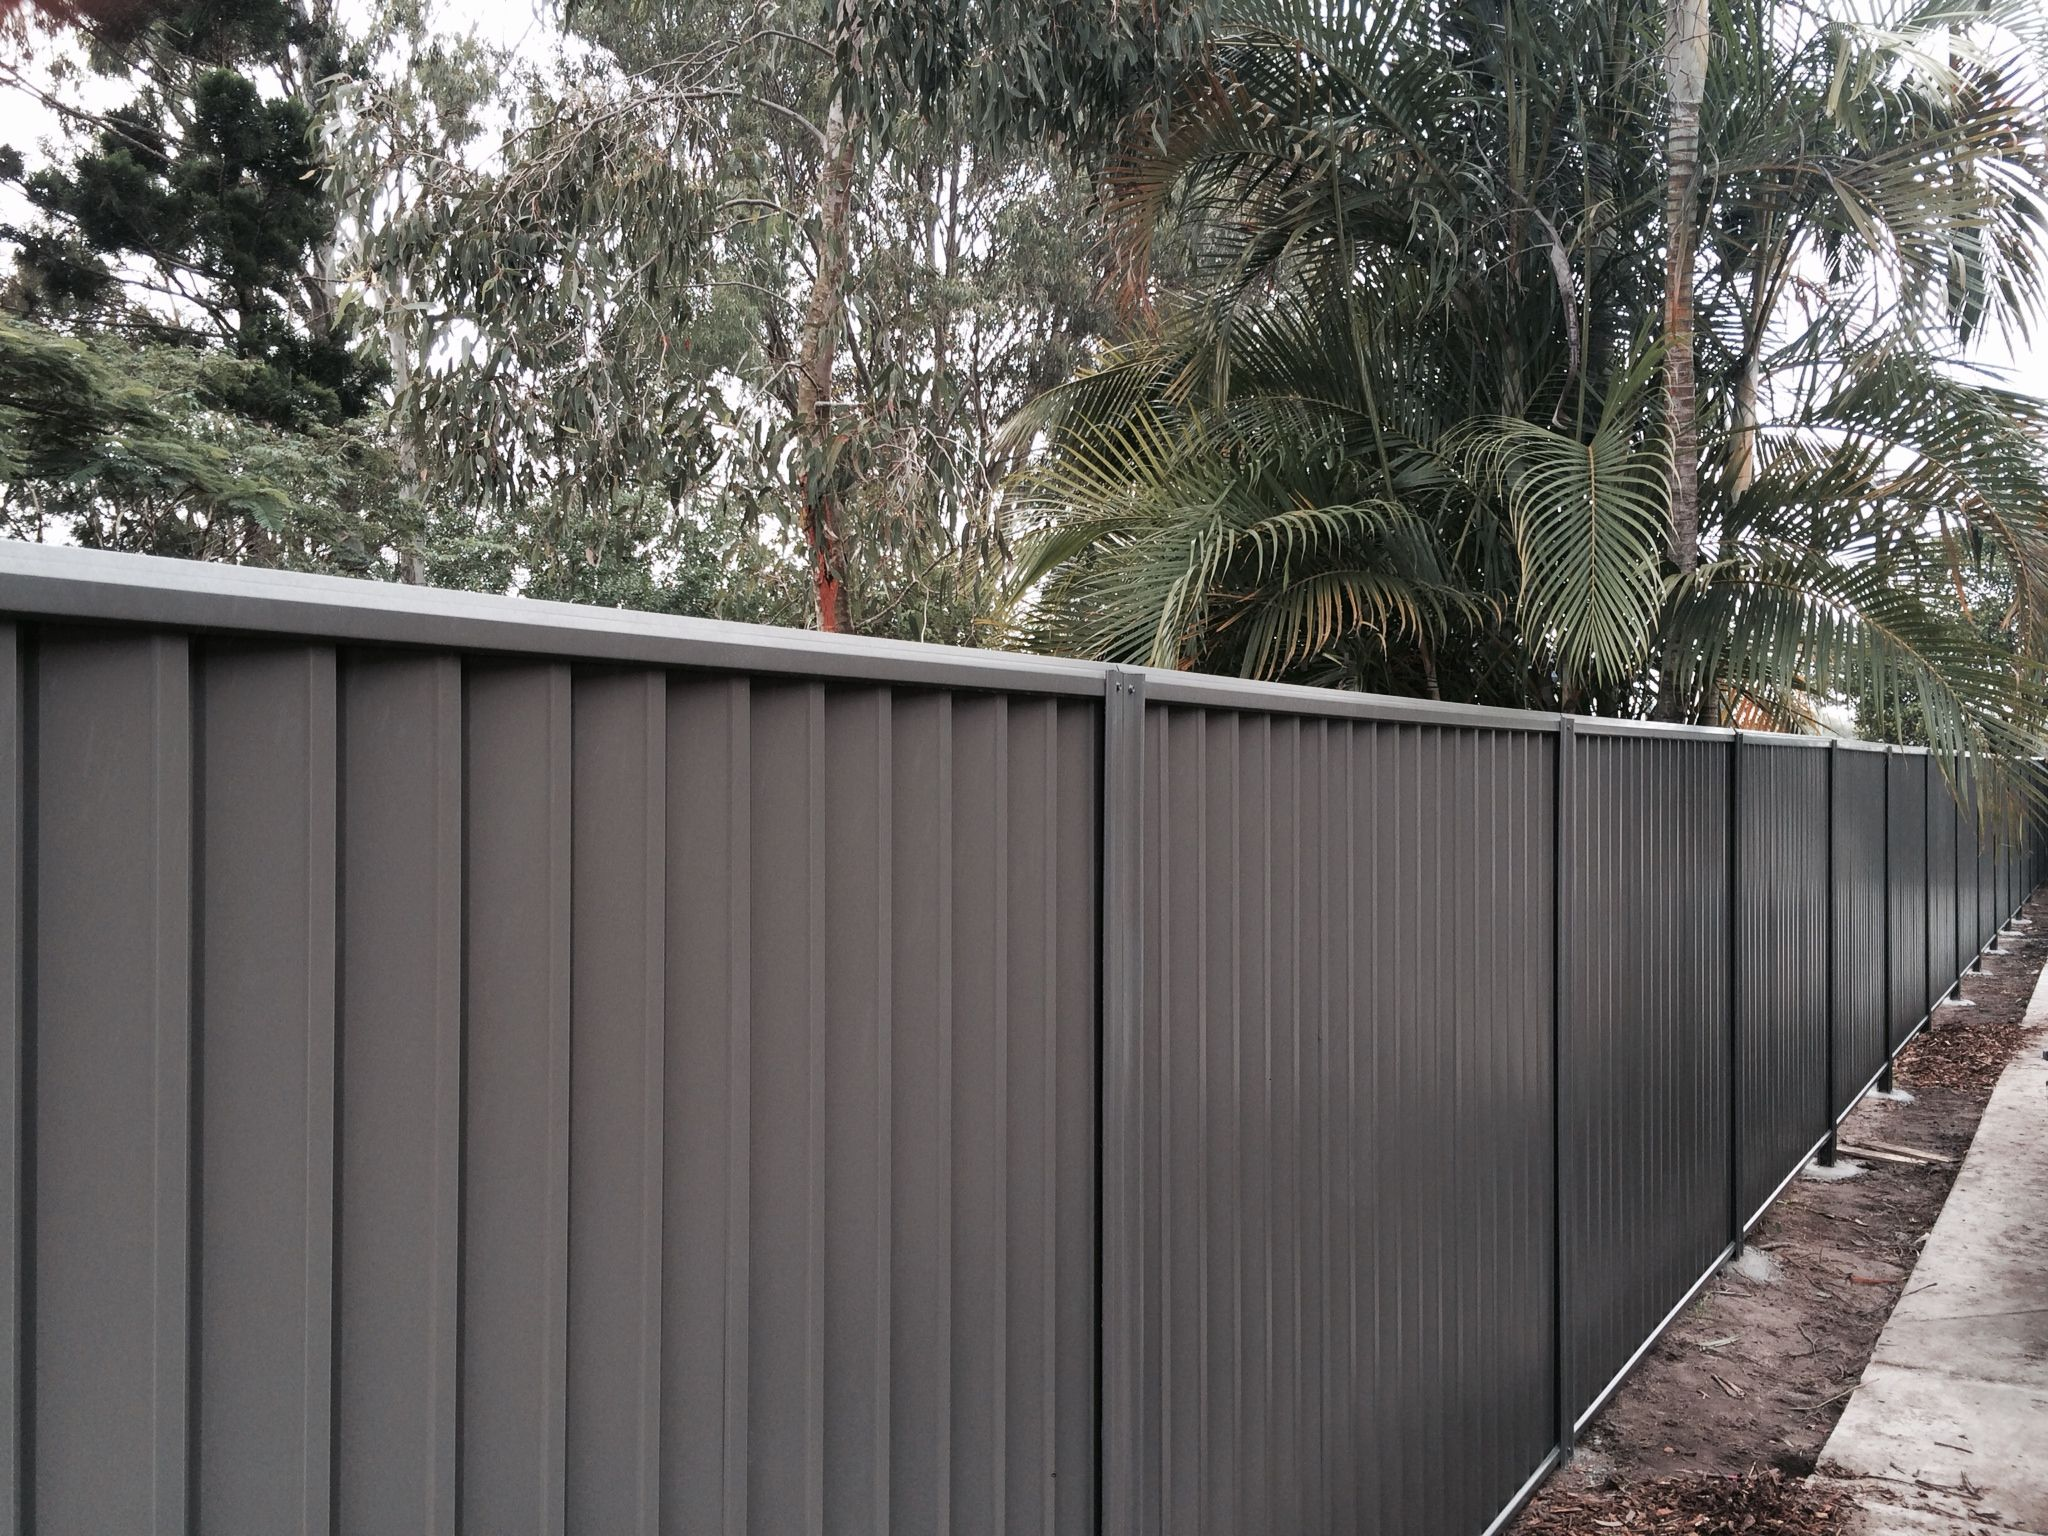 Colorbond sheets brisbane - View Our Range Of Colorbond Fencing Options With The Ability To Complement Any Living Style Colorbond Has The Added Advantage Of Begin Termite And Wood